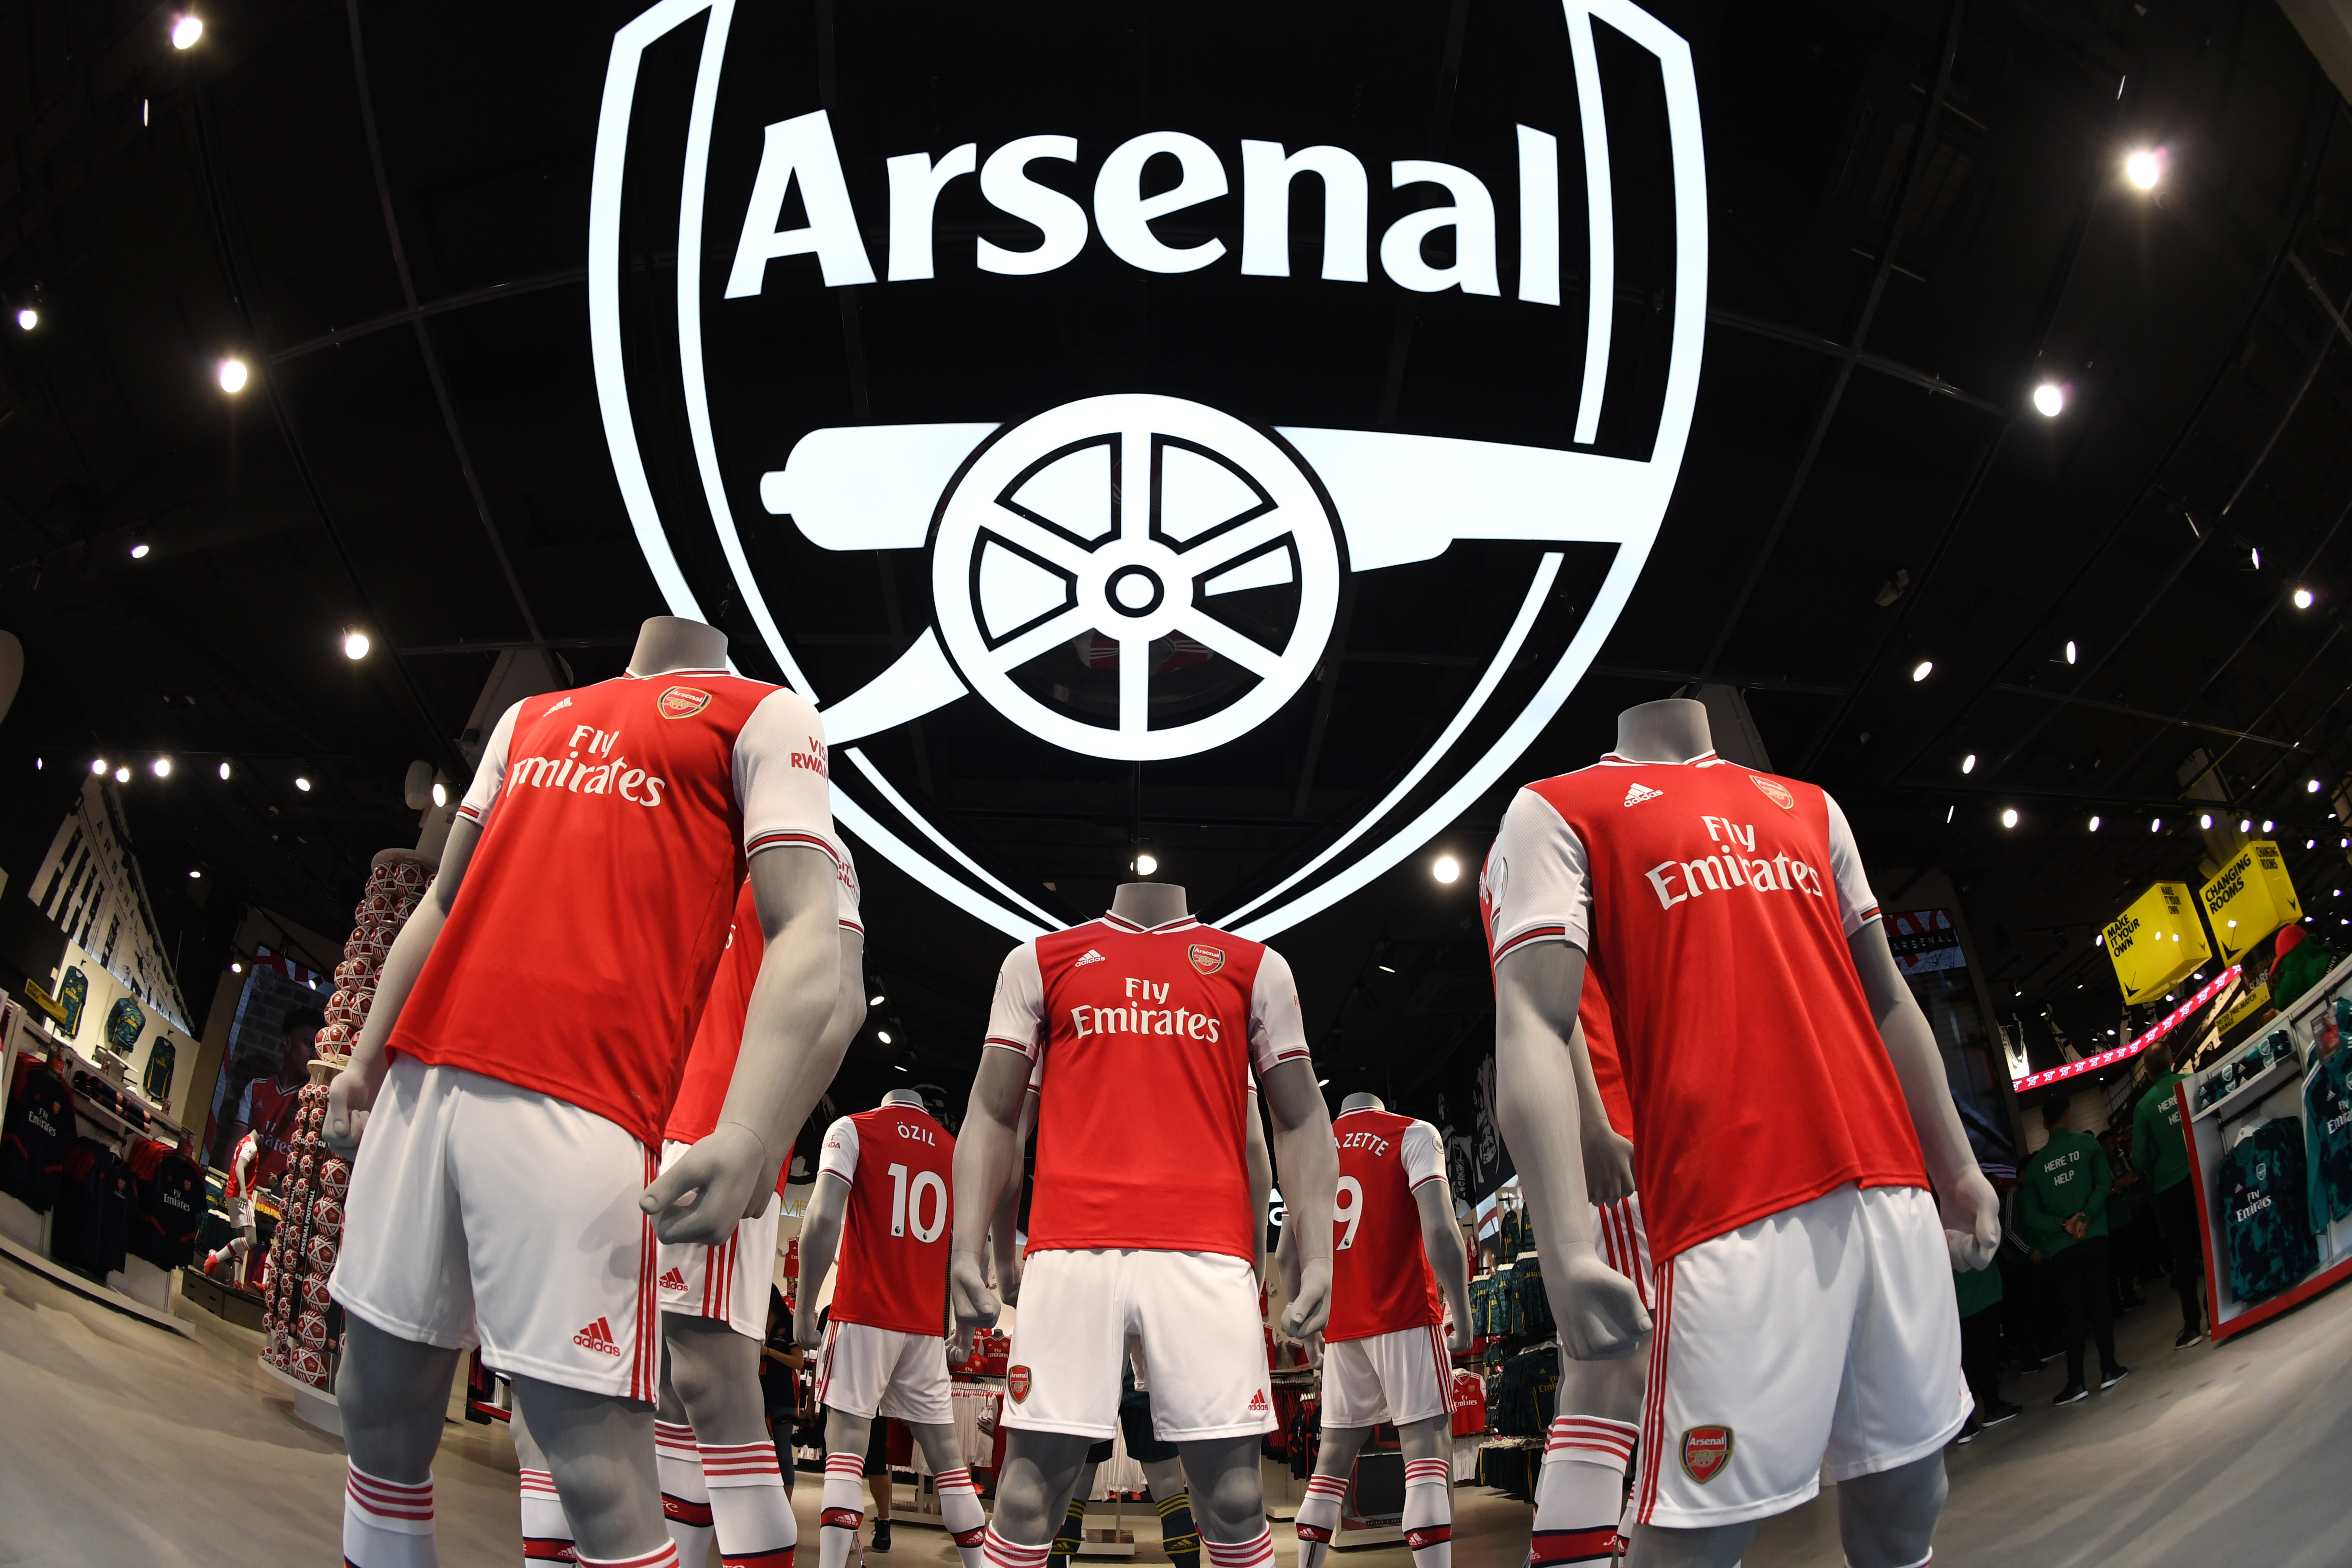 Arsenal 2019-20 Adidas Home Kit Launch